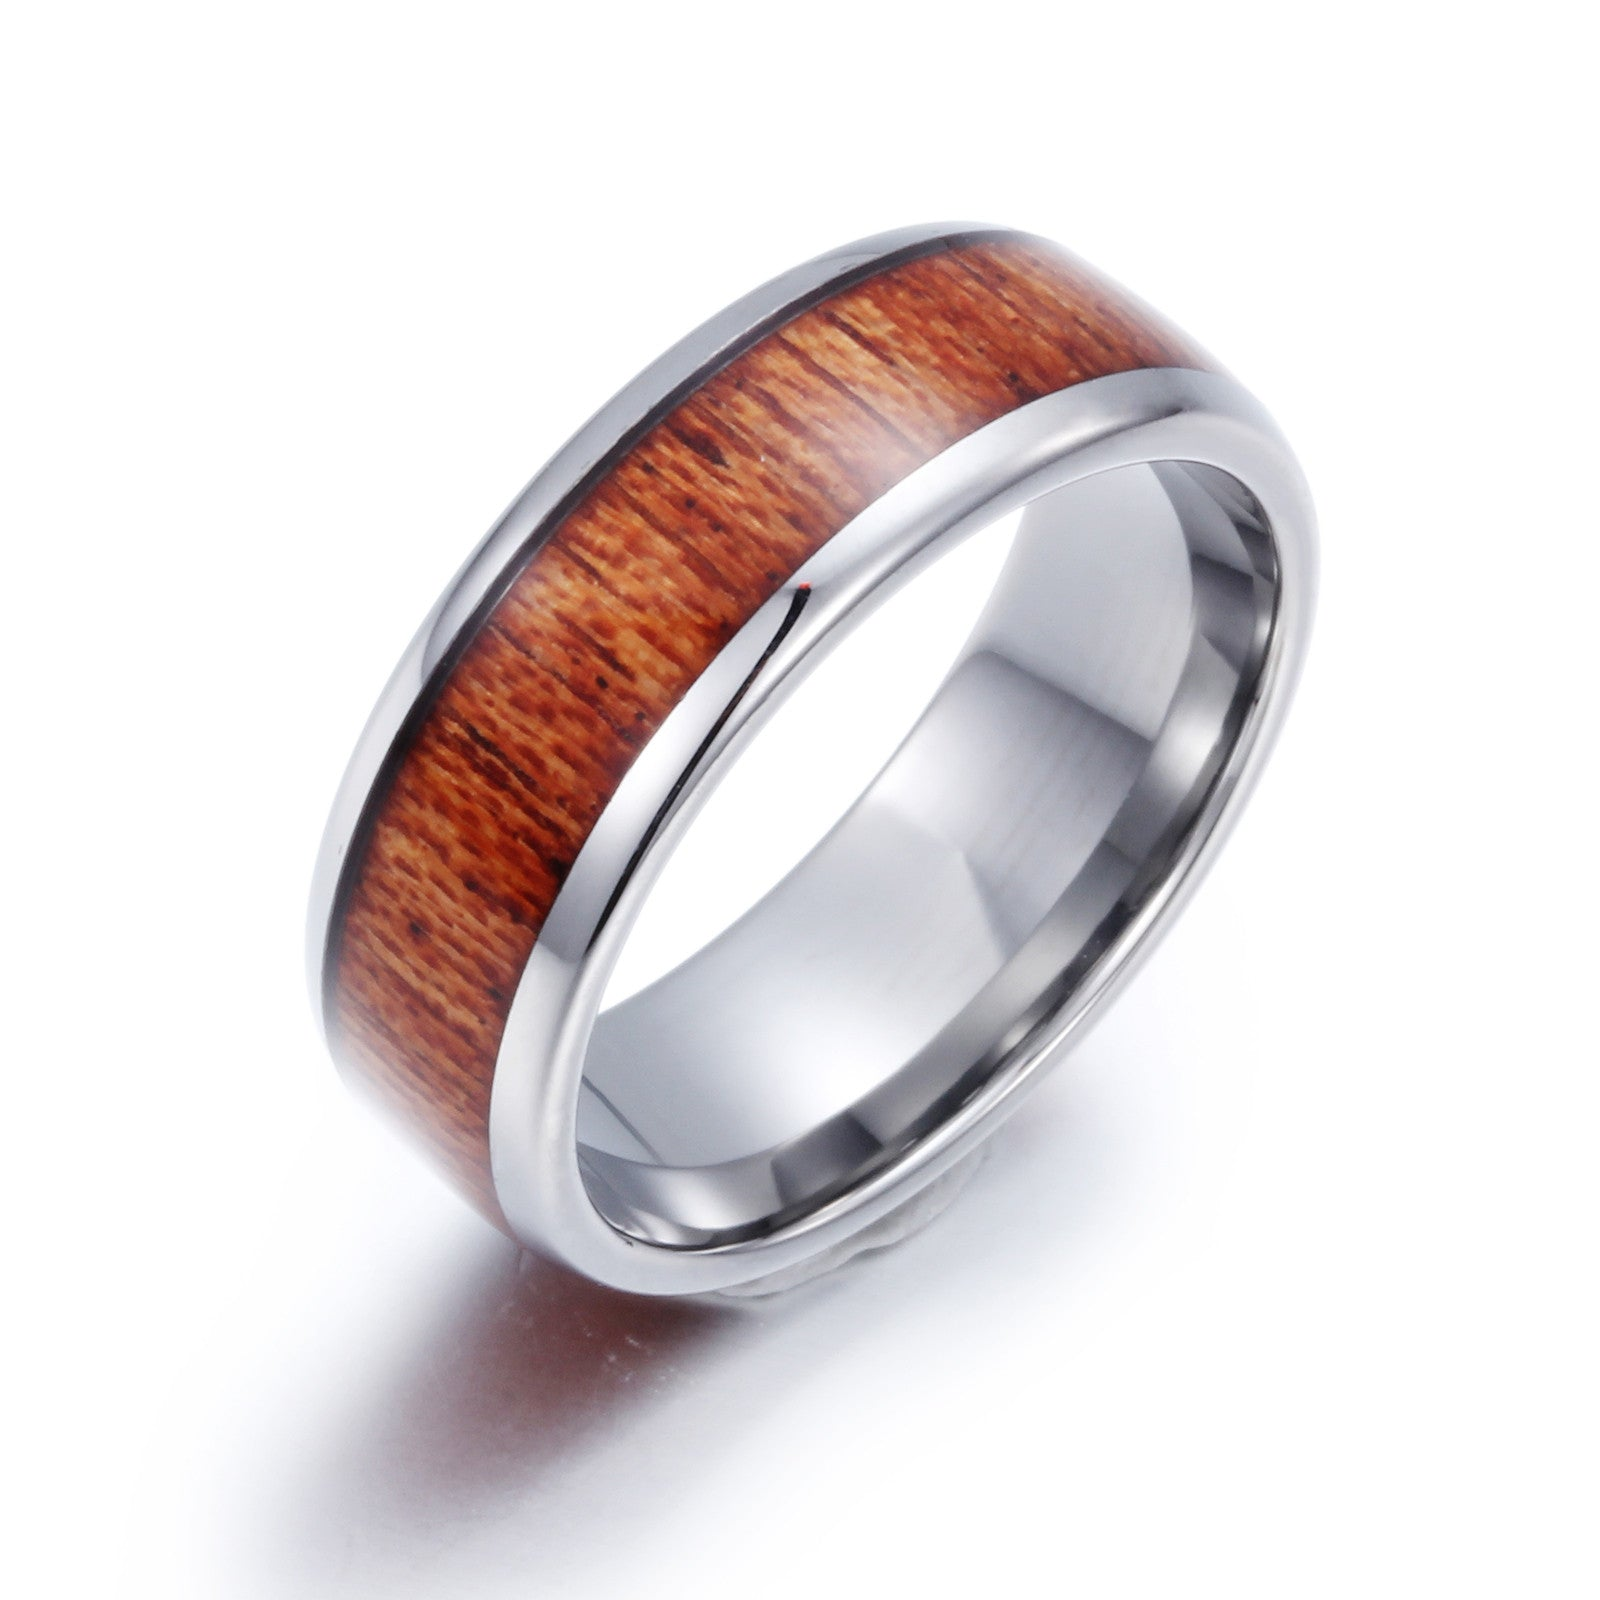 Personalized Minimalism Wood Grain Pattern Tungsten Steel Men s